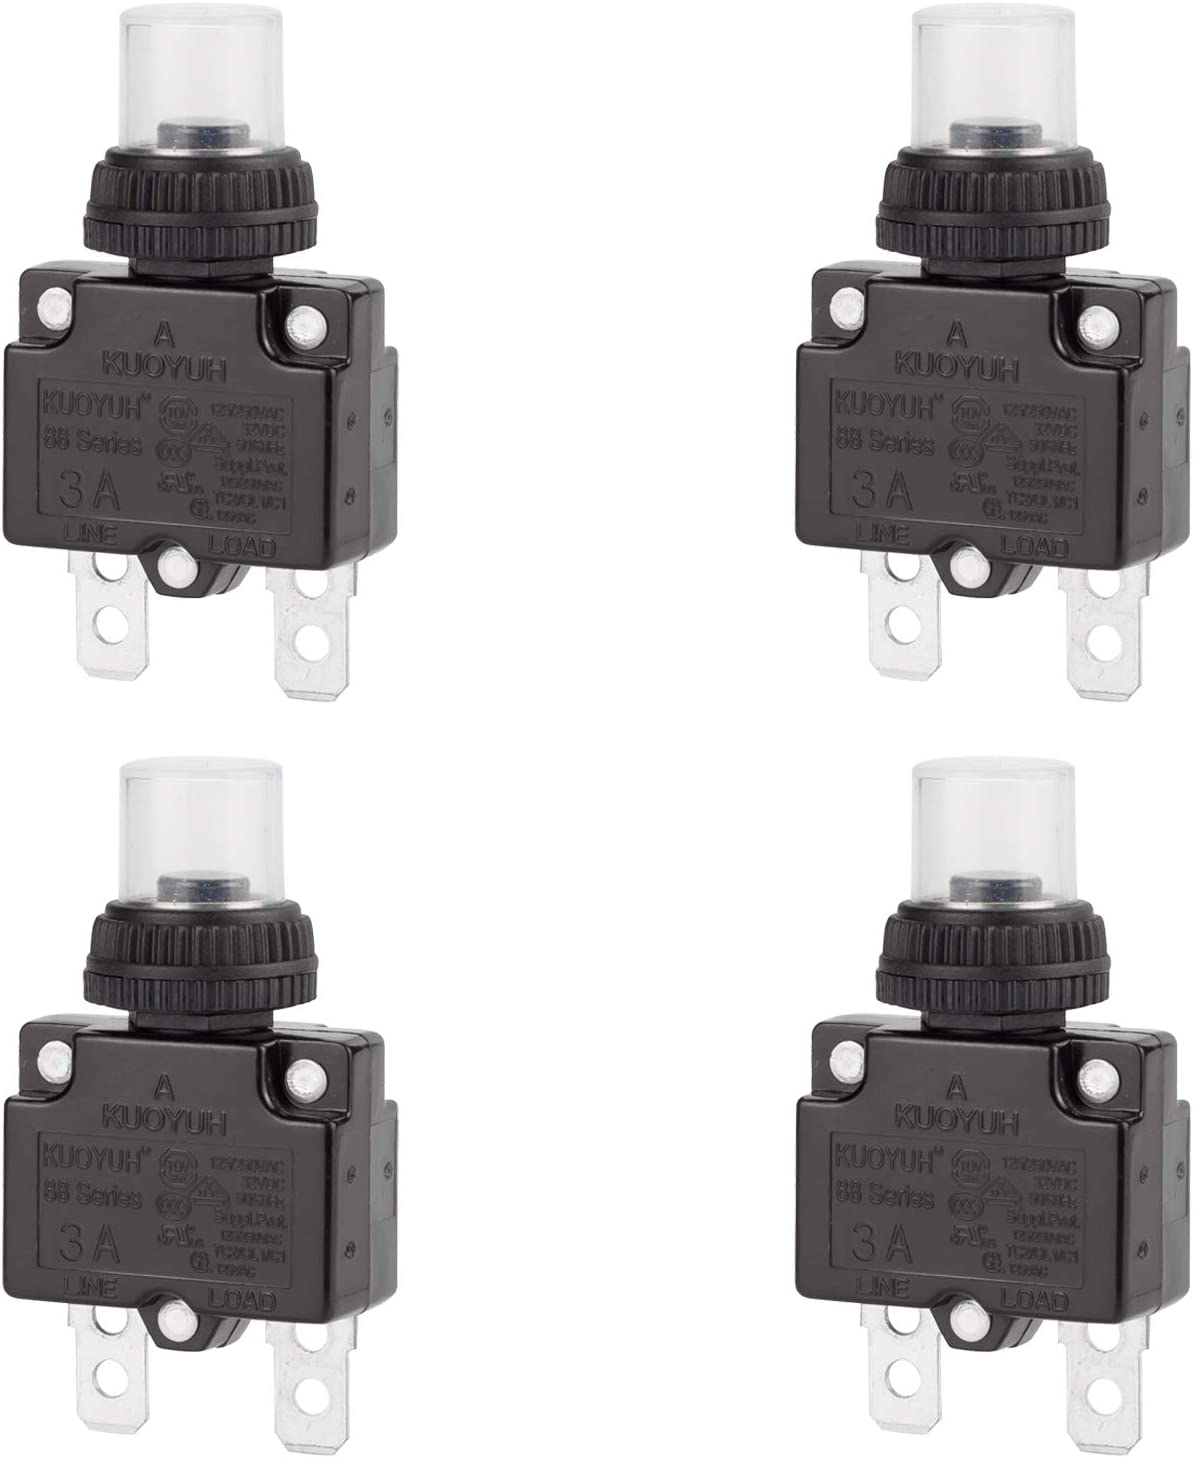 DIYhz 3Amp Circuit Breakers Thermal 88 Max 54% OFF Protector Overload Switch New color